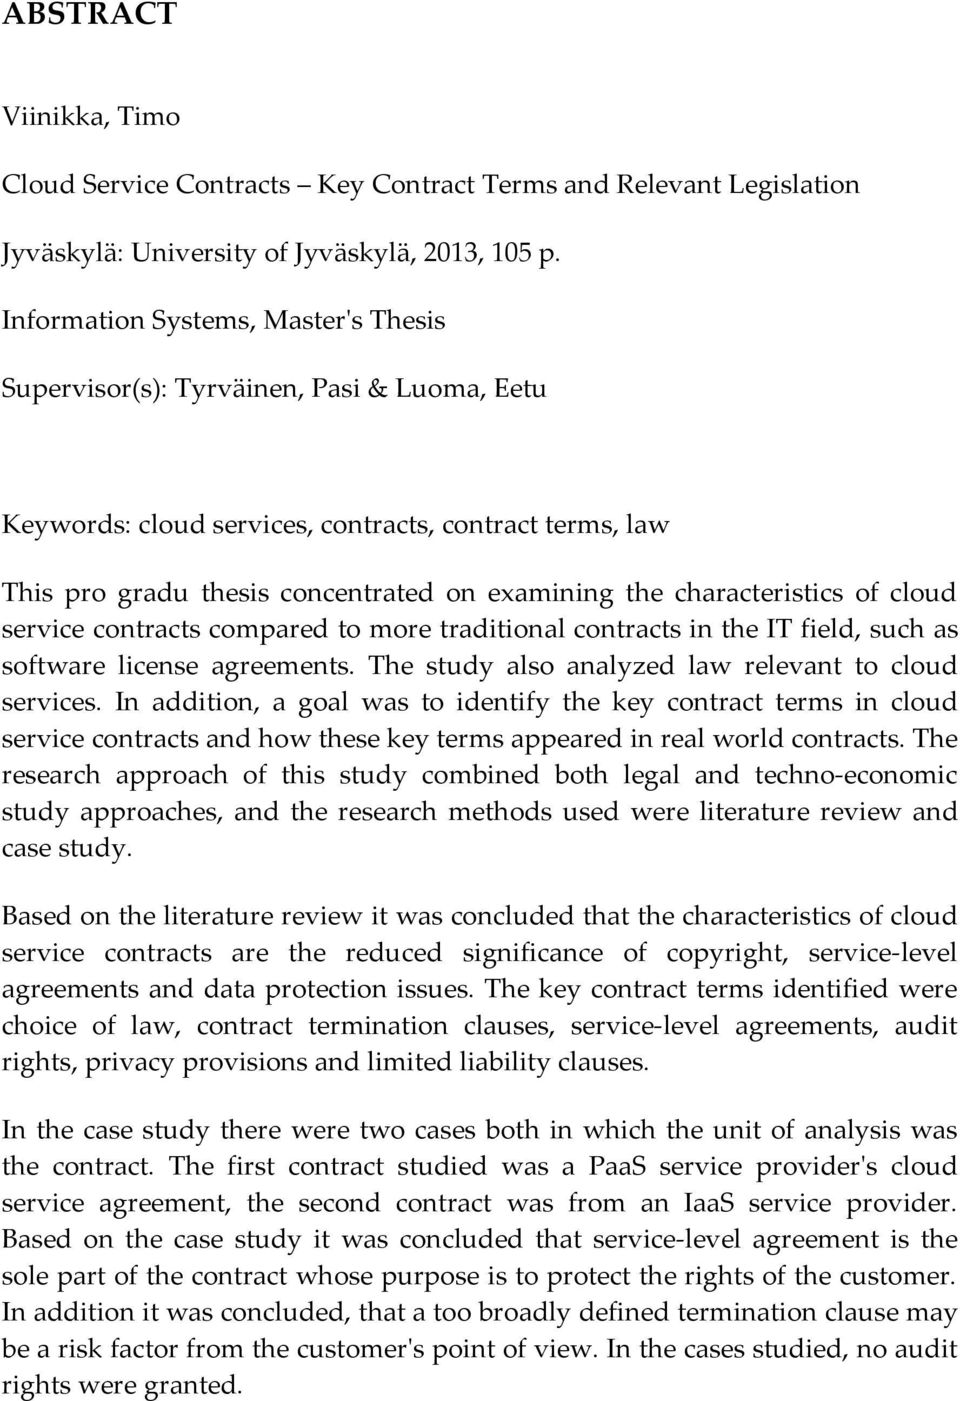 characteristics of cloud service contracts compared to more traditional contracts in the IT field, such as software license agreements. The study also analyzed law relevant to cloud services.